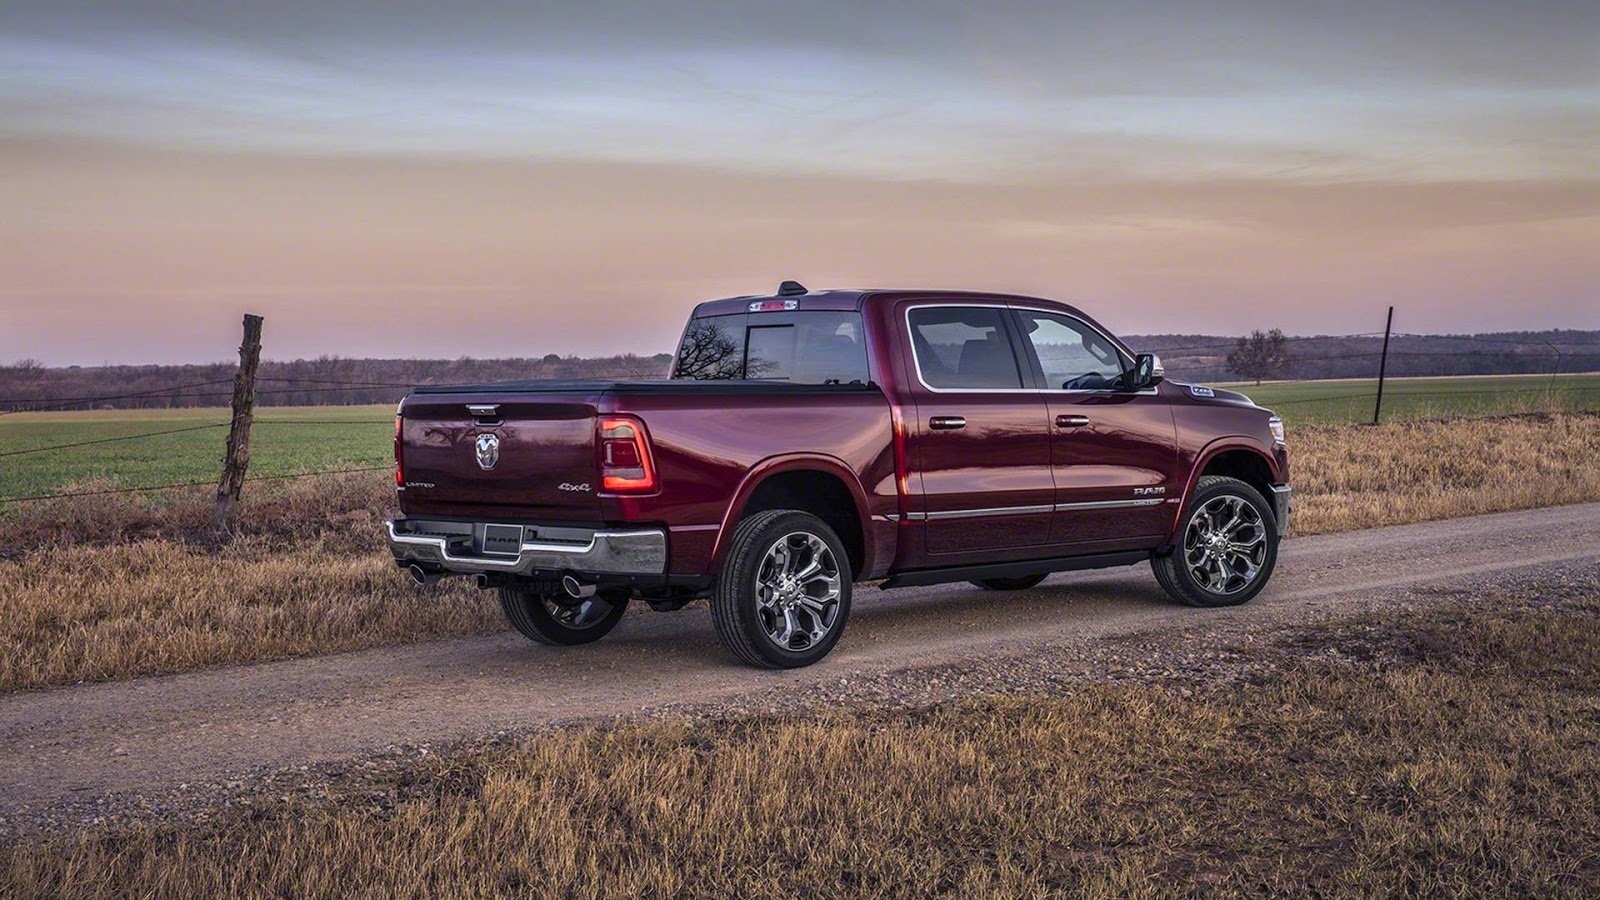 2020 Ram 1500 To Share New EcoDiesel V6 With Jeep Gladiator Pickup